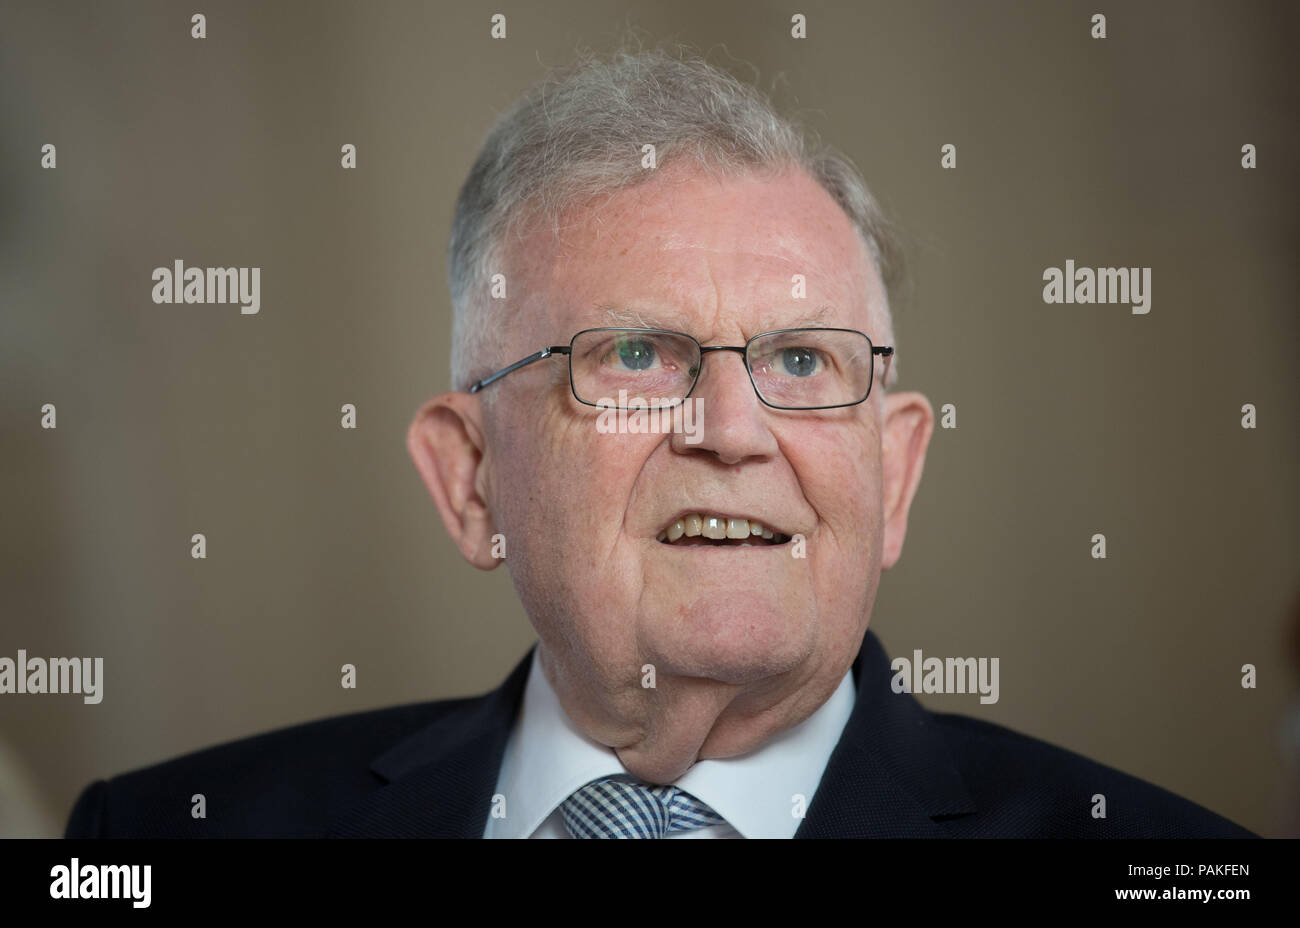 Stuttgart, Germany. 23rd July, 2018. Erwin Teufel, former Minister President of Baden-Württemberg, smiles at the handover ceremony of the office of President of the Constitutional Tribunal of Baden-Württemberg. Credit: Marijan Murat/dpa/Alamy Live News Stock Photo